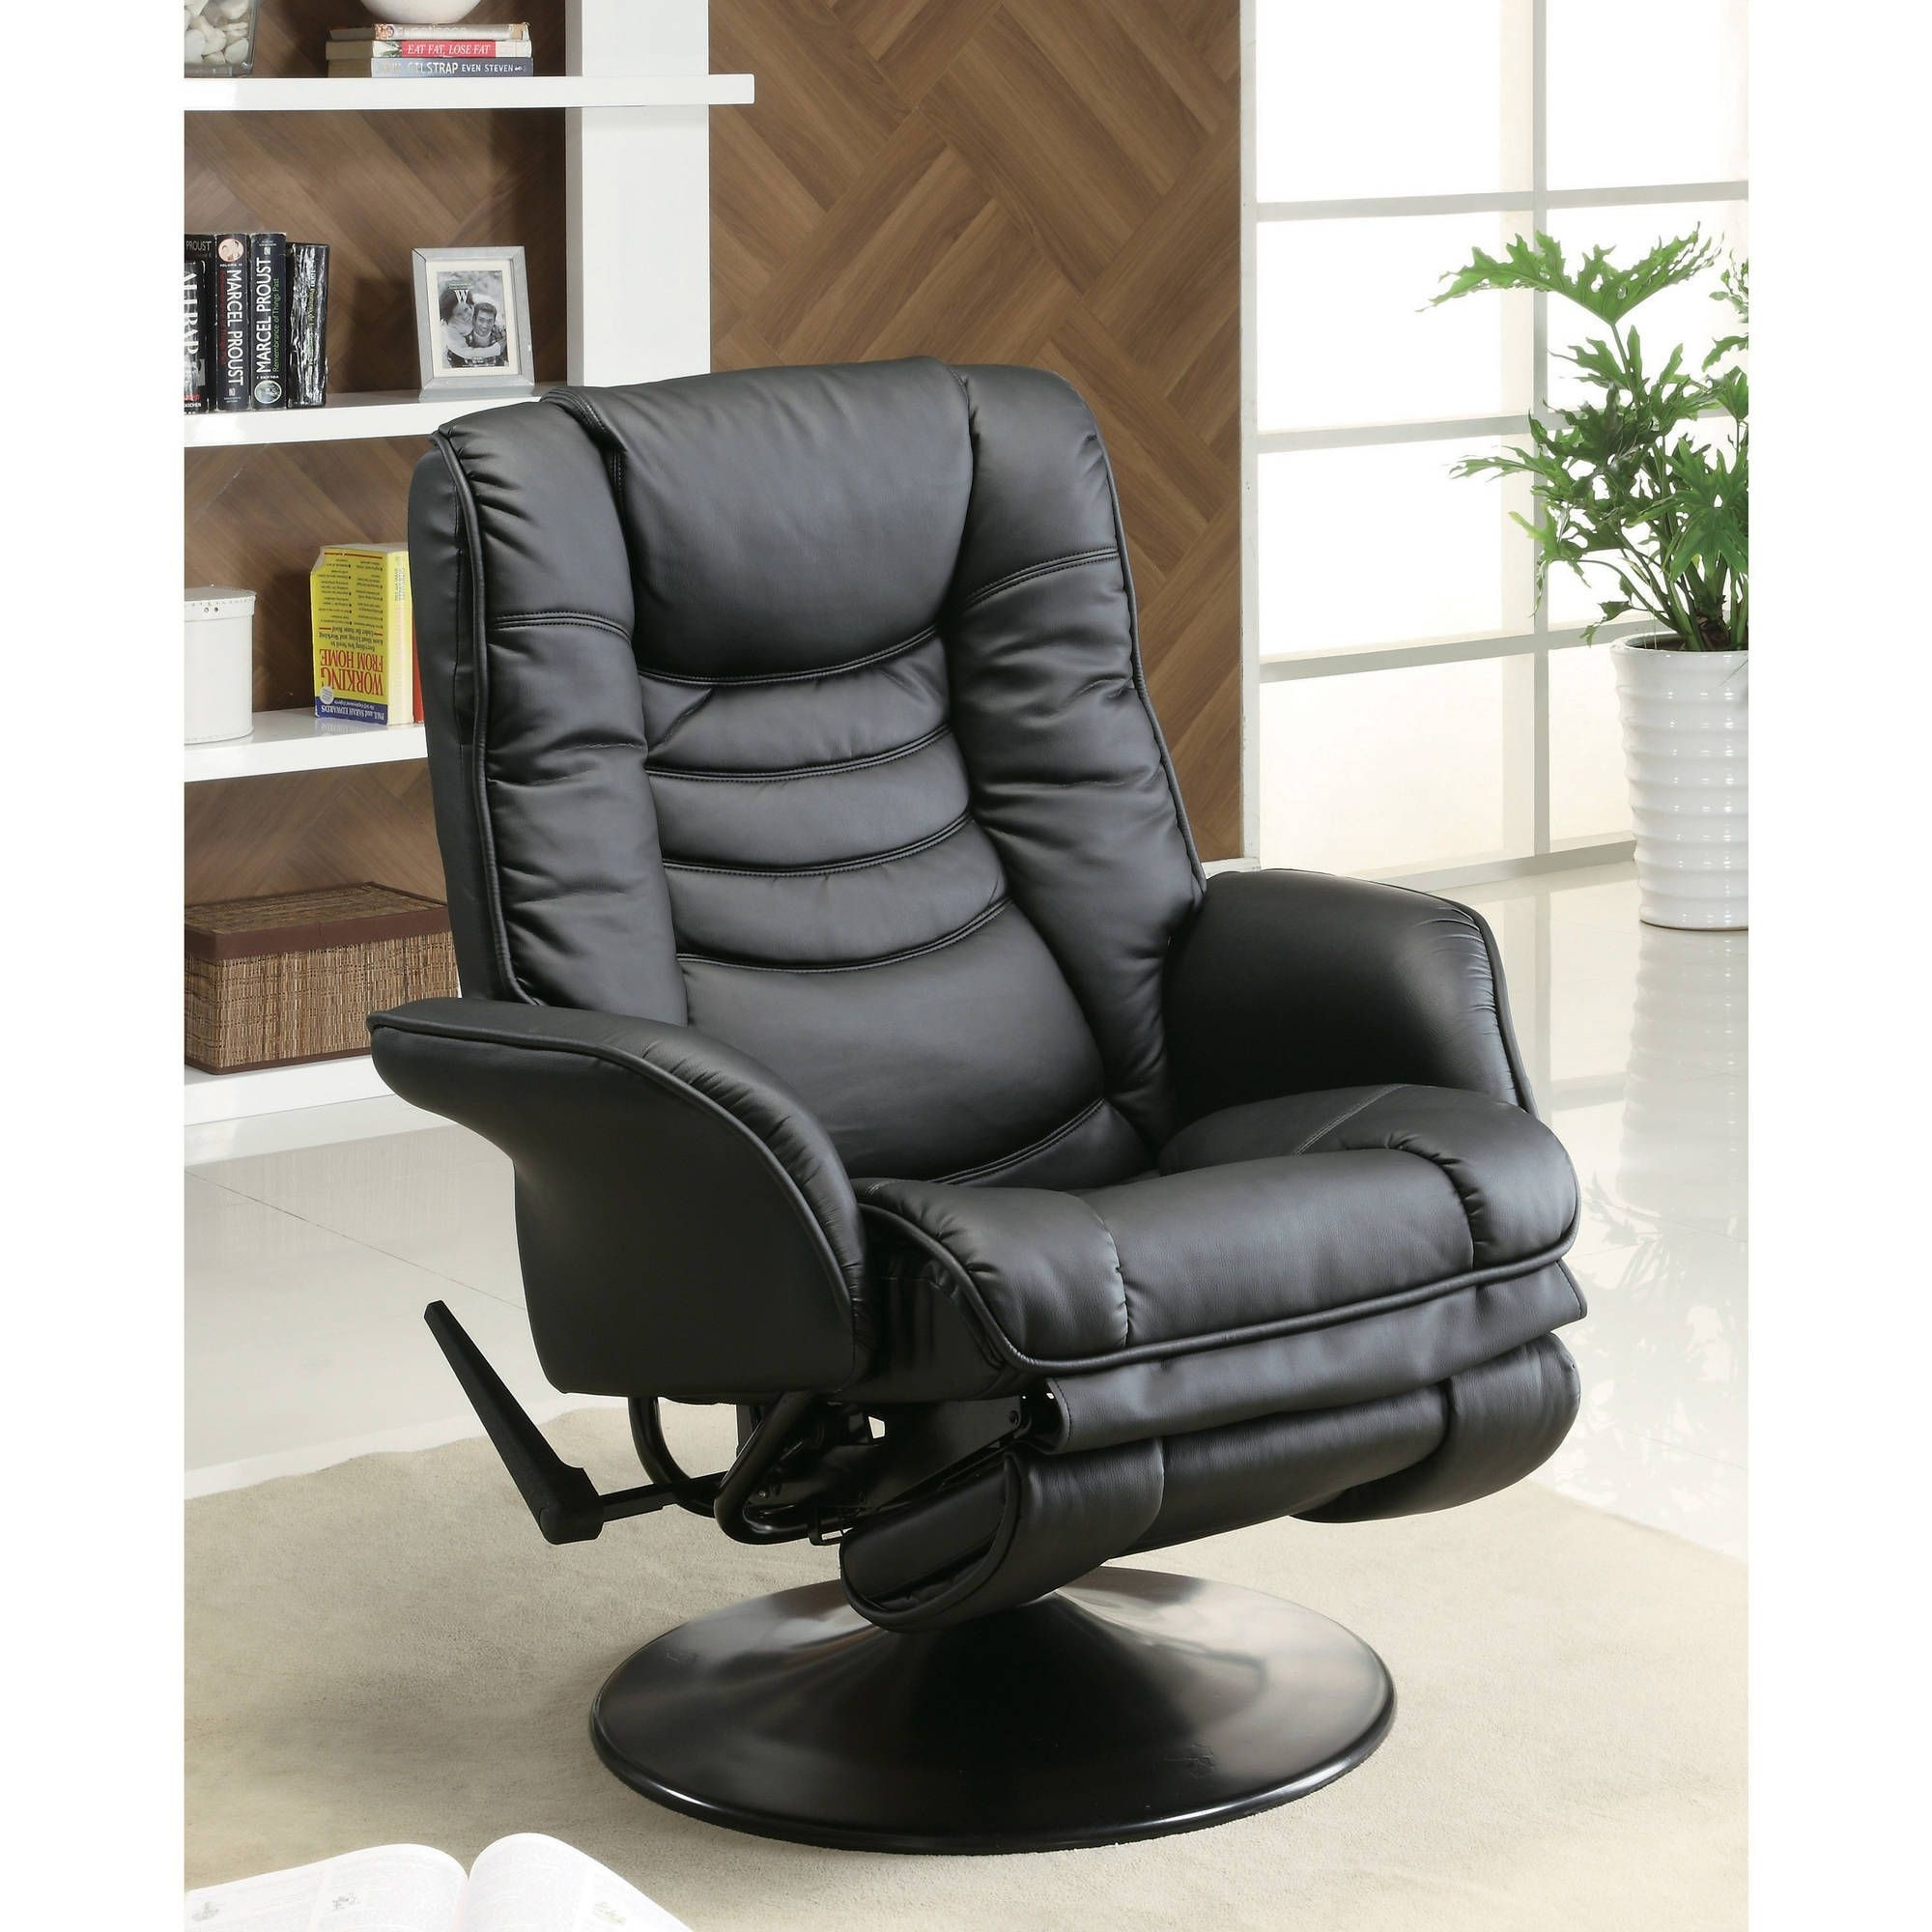 Leather Swivel Recliner Chair Reclining Black W Arms Footrest Lounge